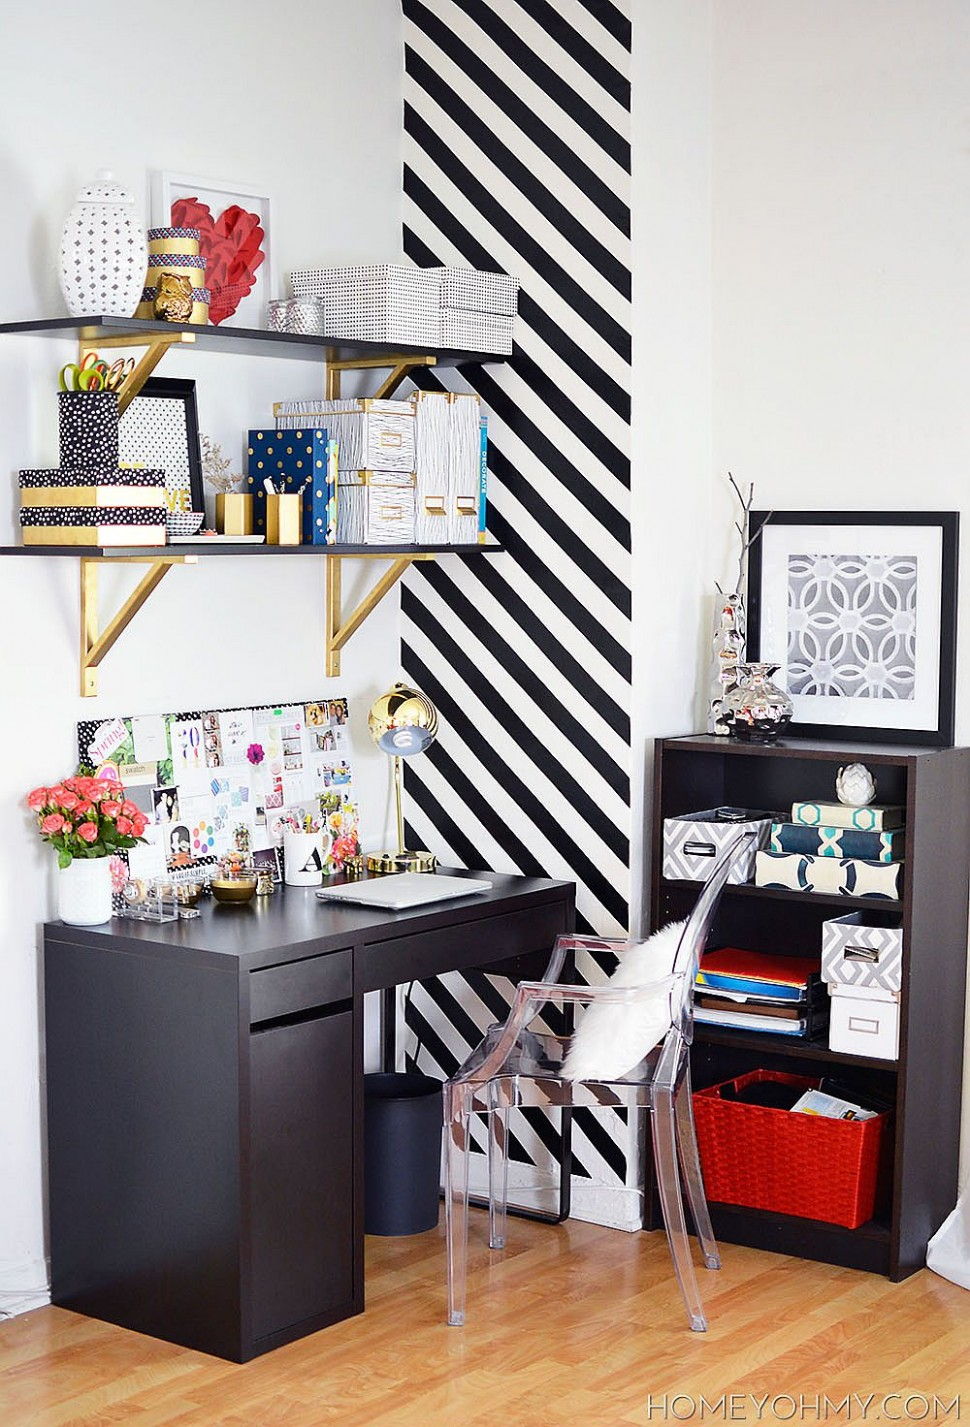 12 DIY Home Office Organization and Storage Ideas that Maximize Space - Home Office Ideas Diy